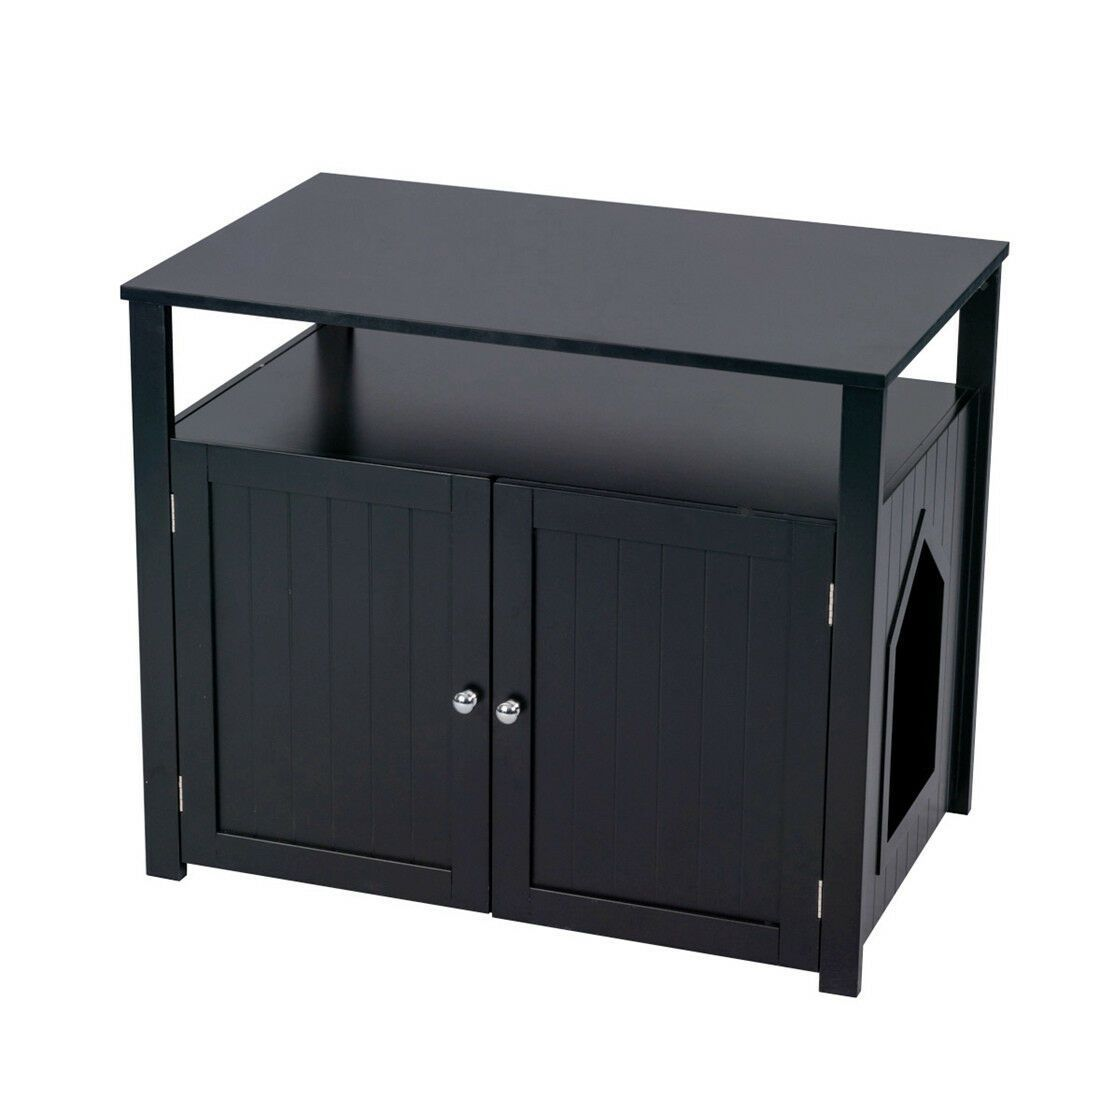 Pets In 2020 With Images Litter Box Enclosure Hiding Cat